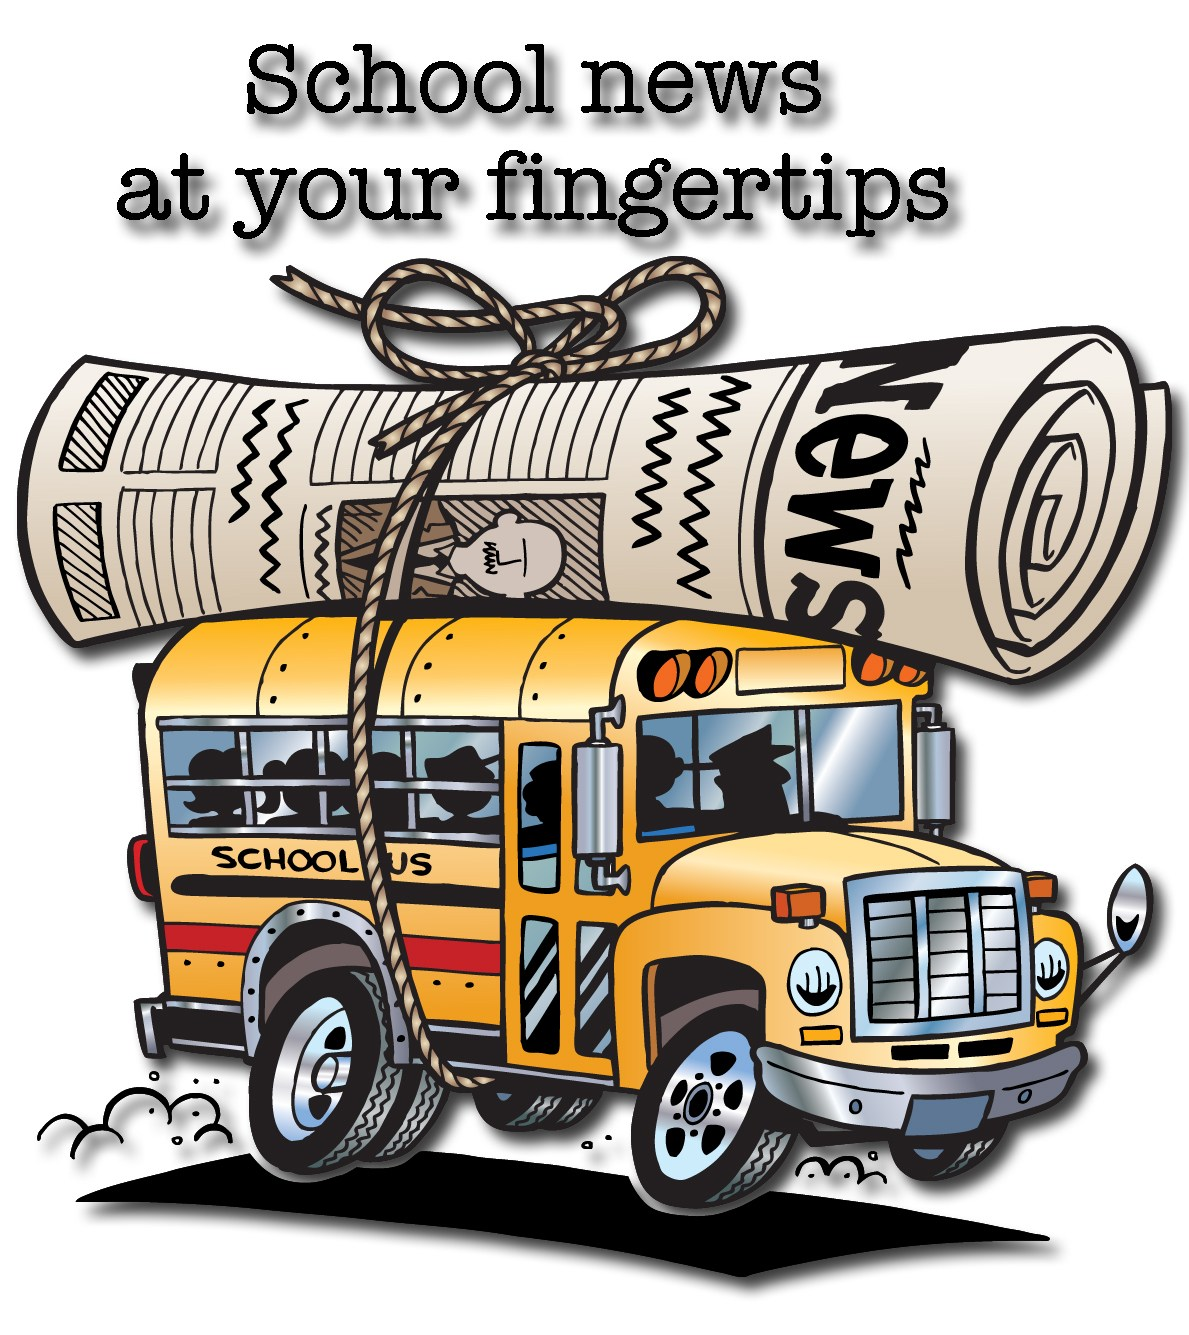 image of a rolled newspaper on top of a school bus